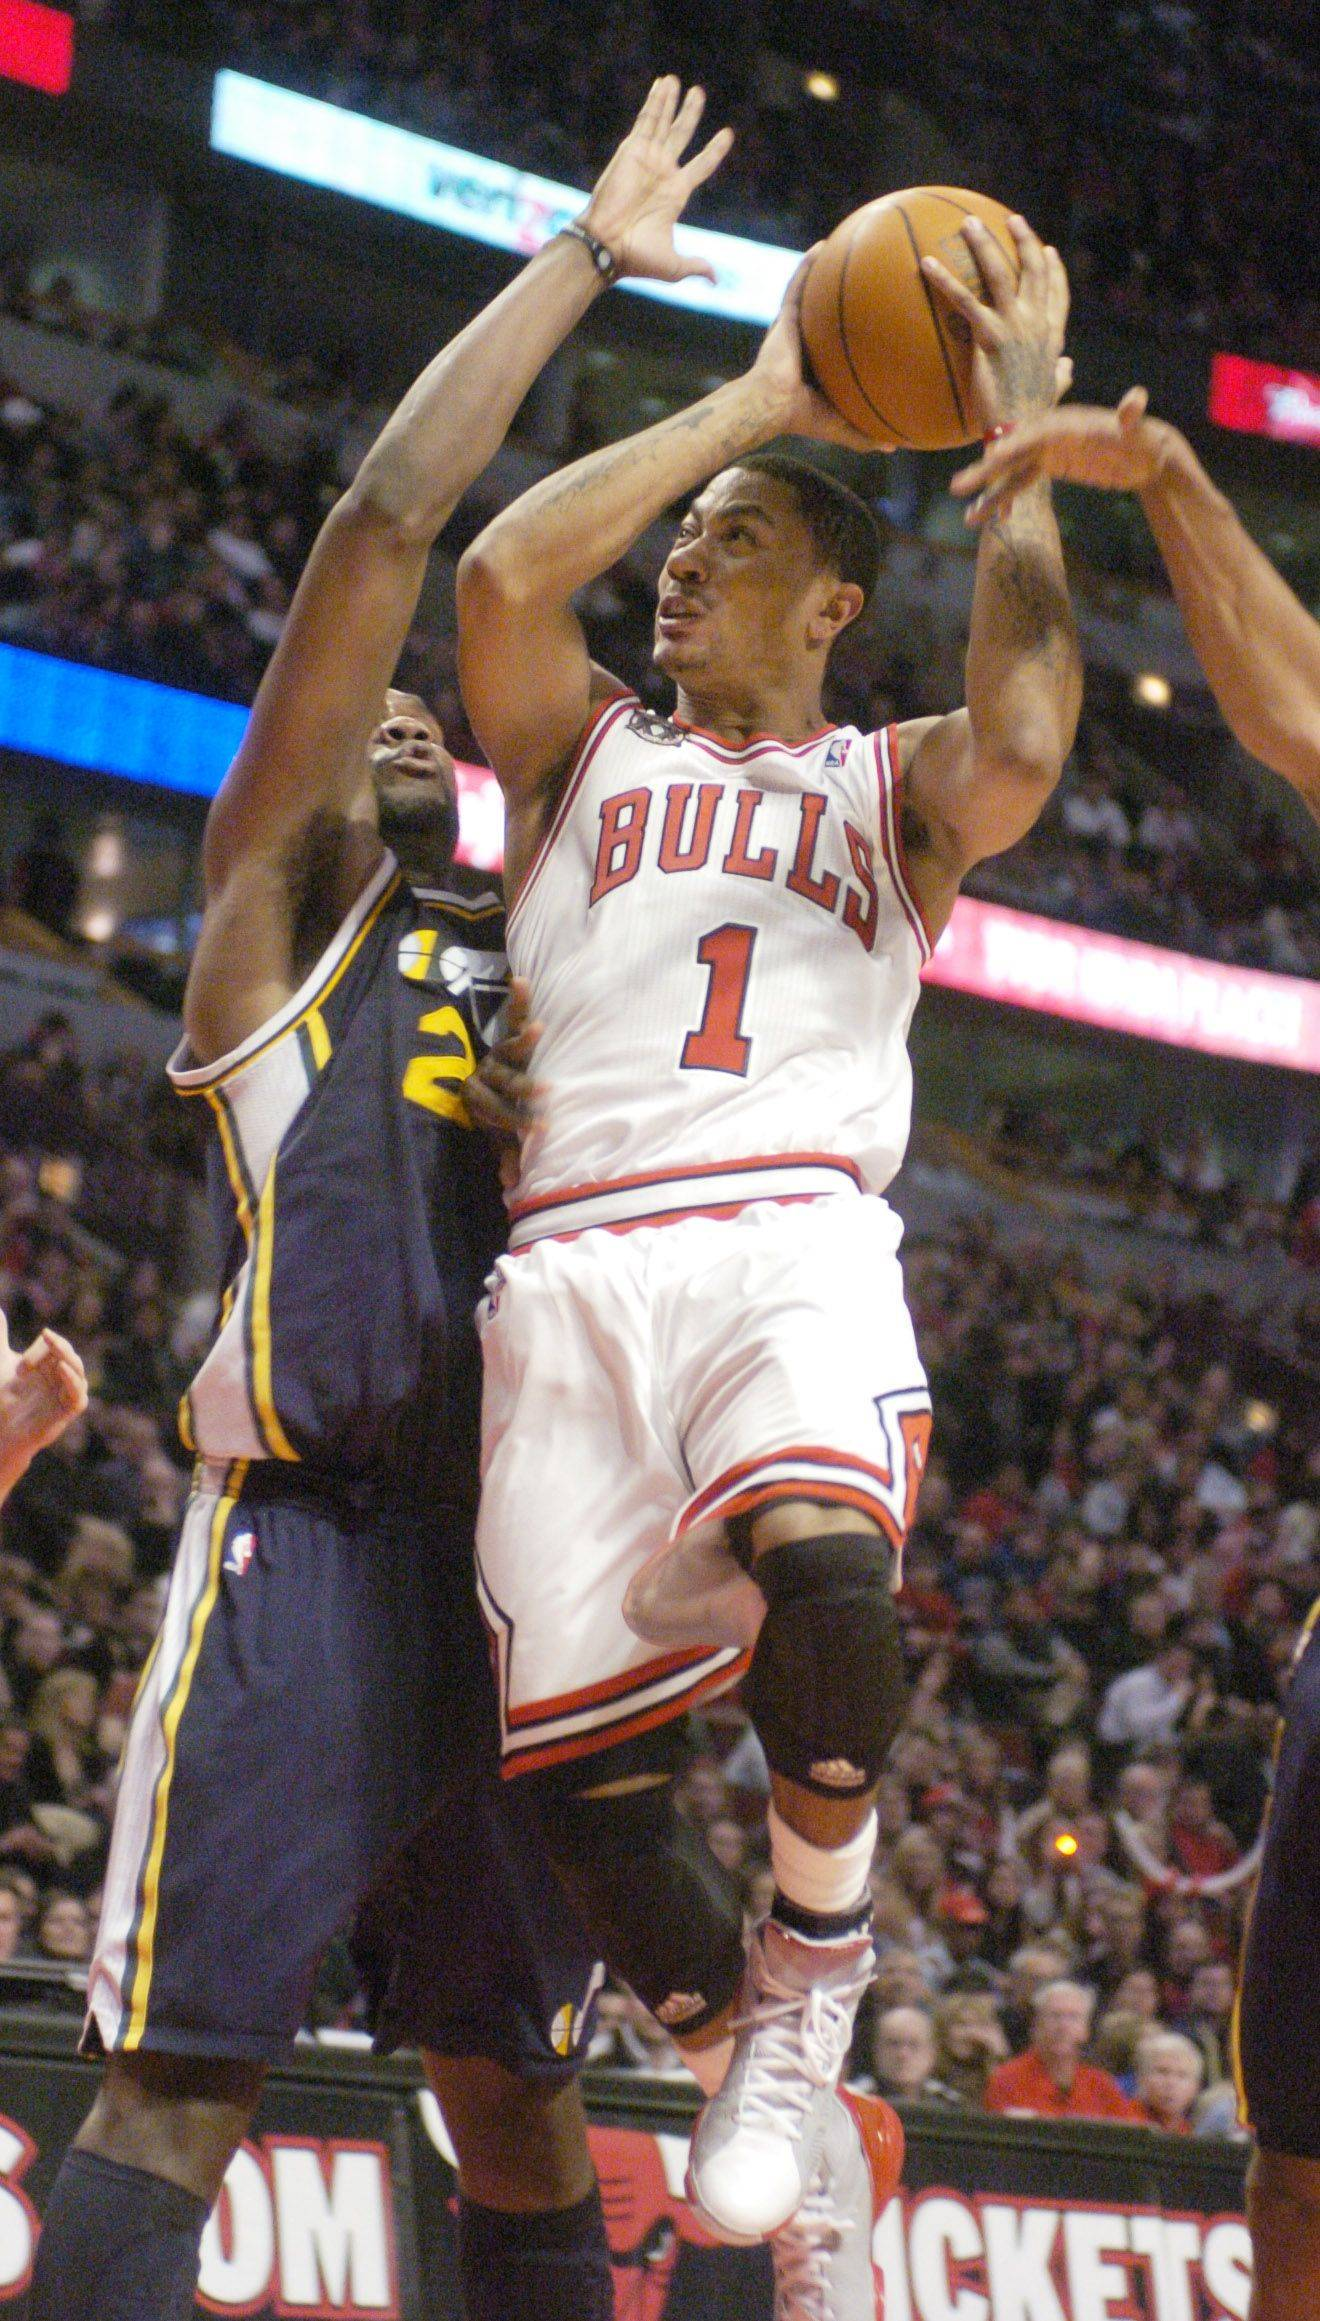 Derrick Rose of the Bulls drives to the basket against Al Jefferson of the Jazz.